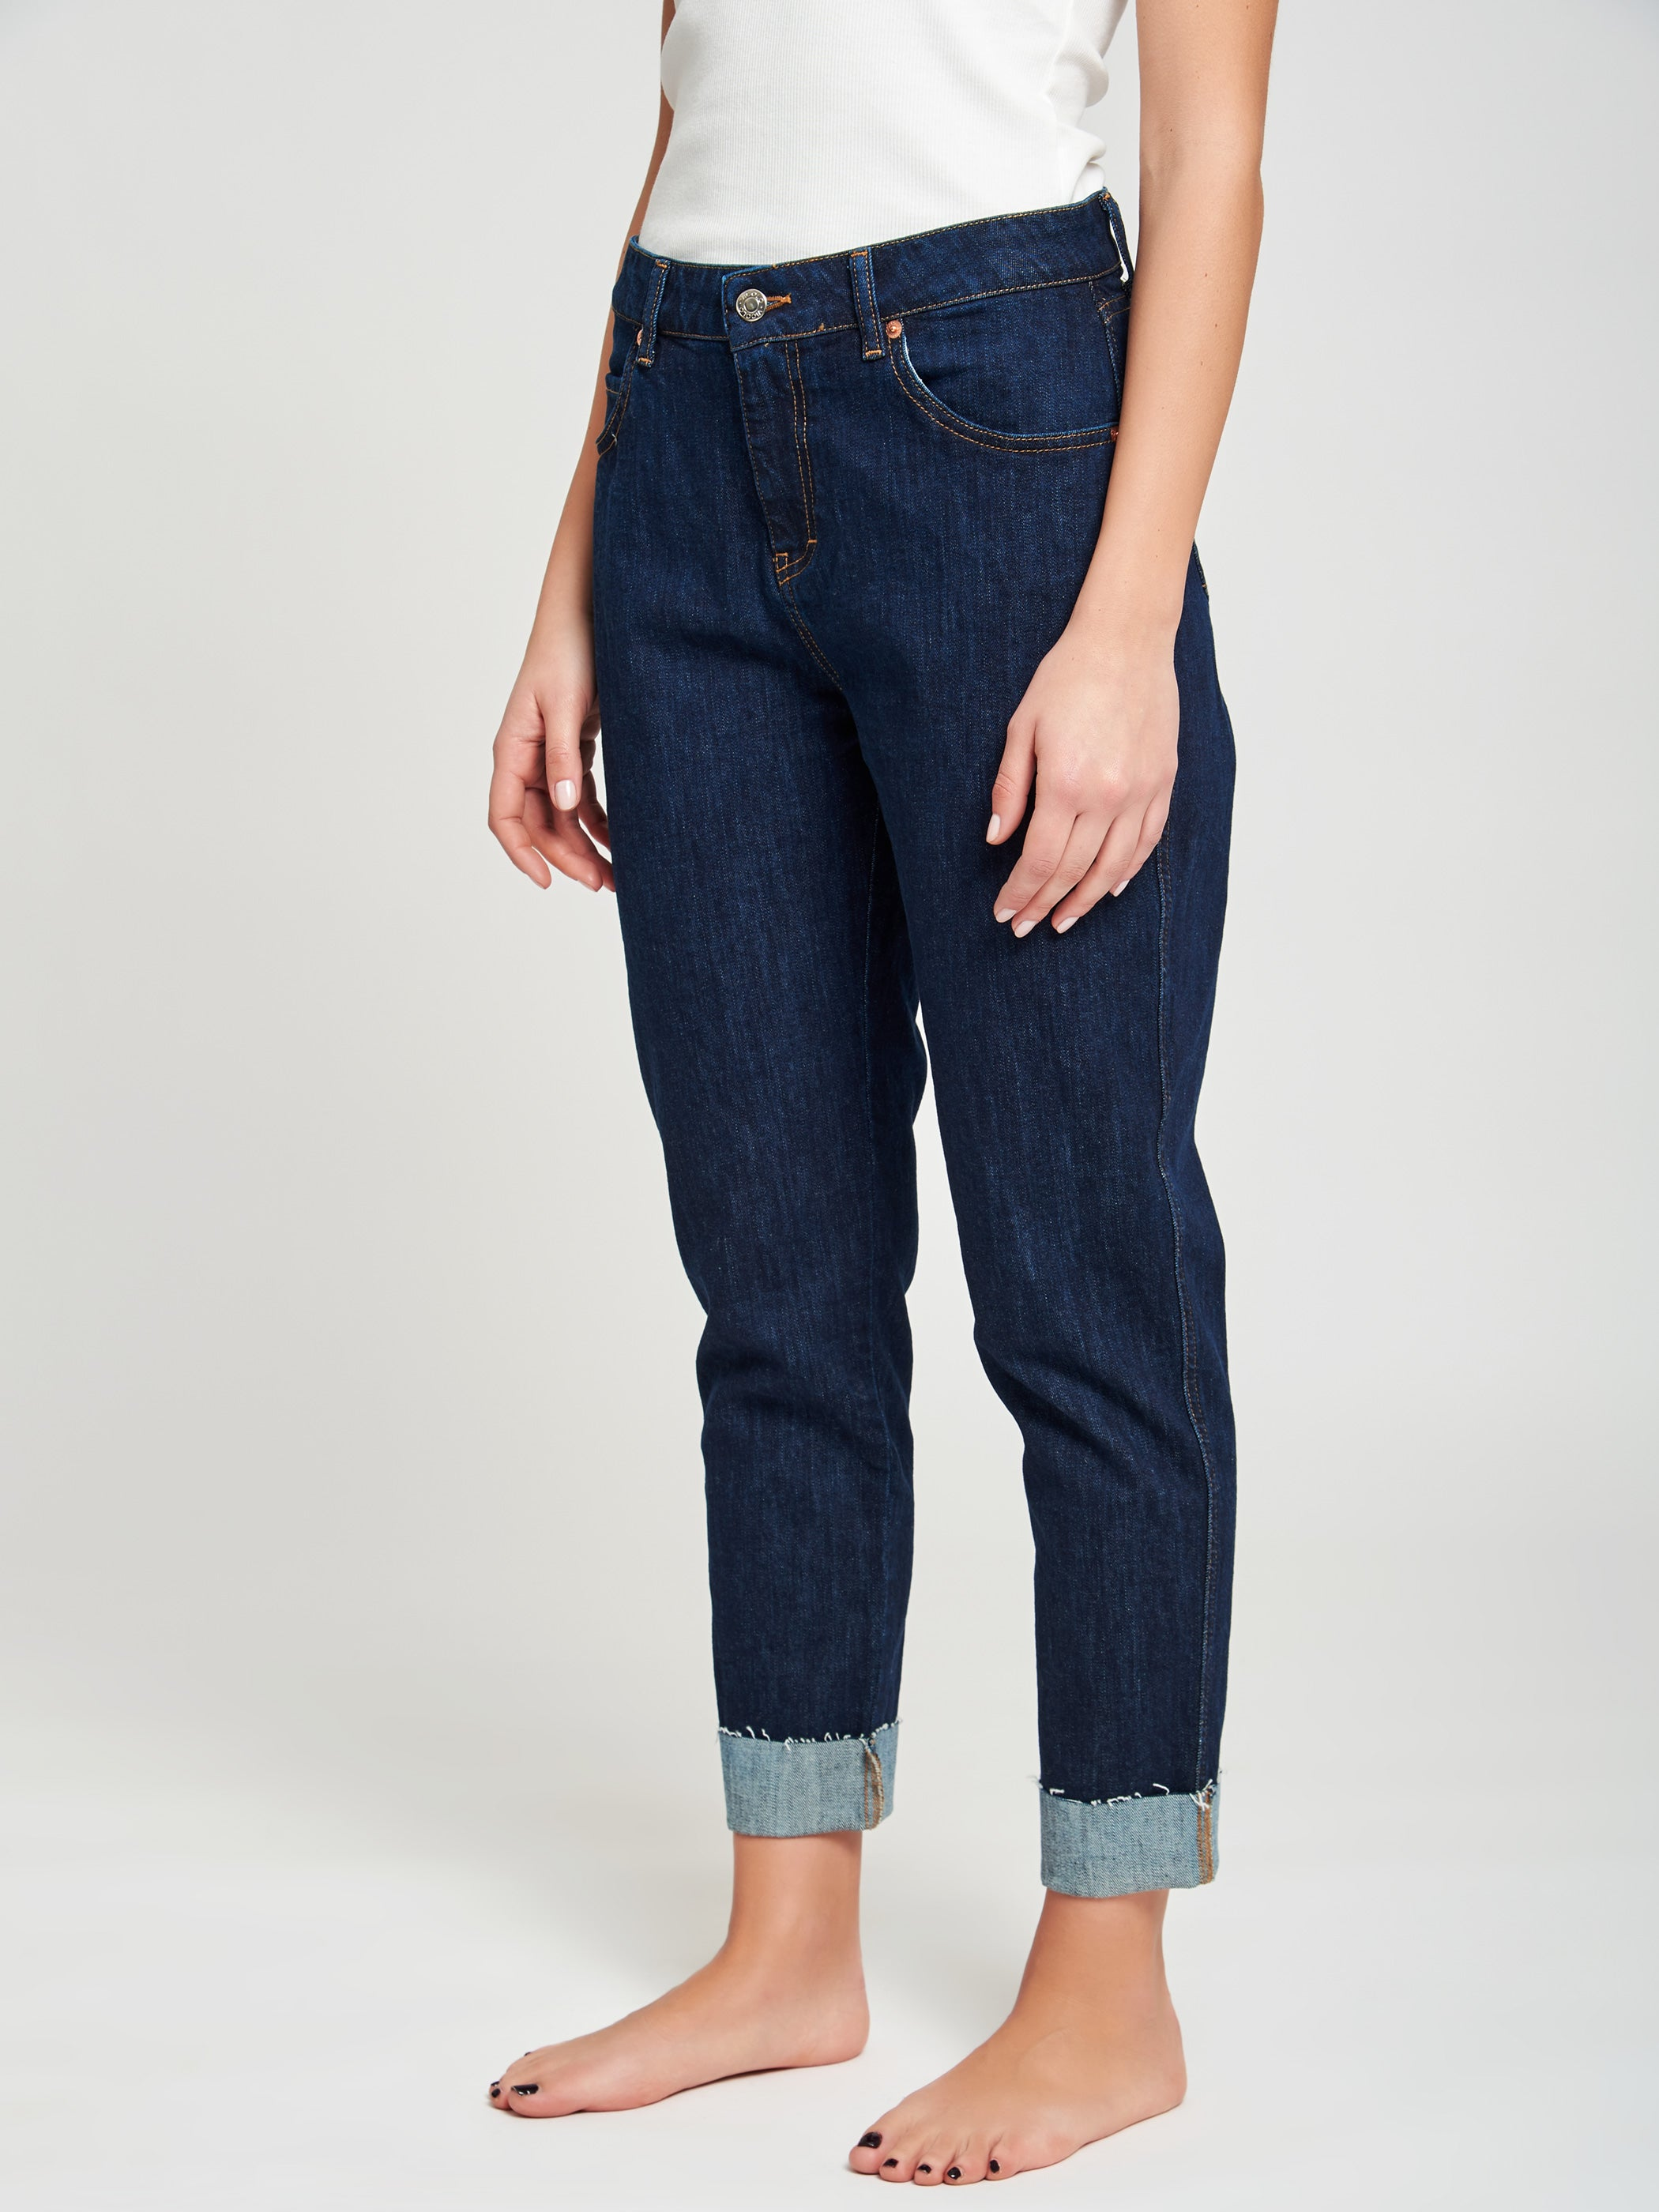 Frayed hem jeans - sienna icon